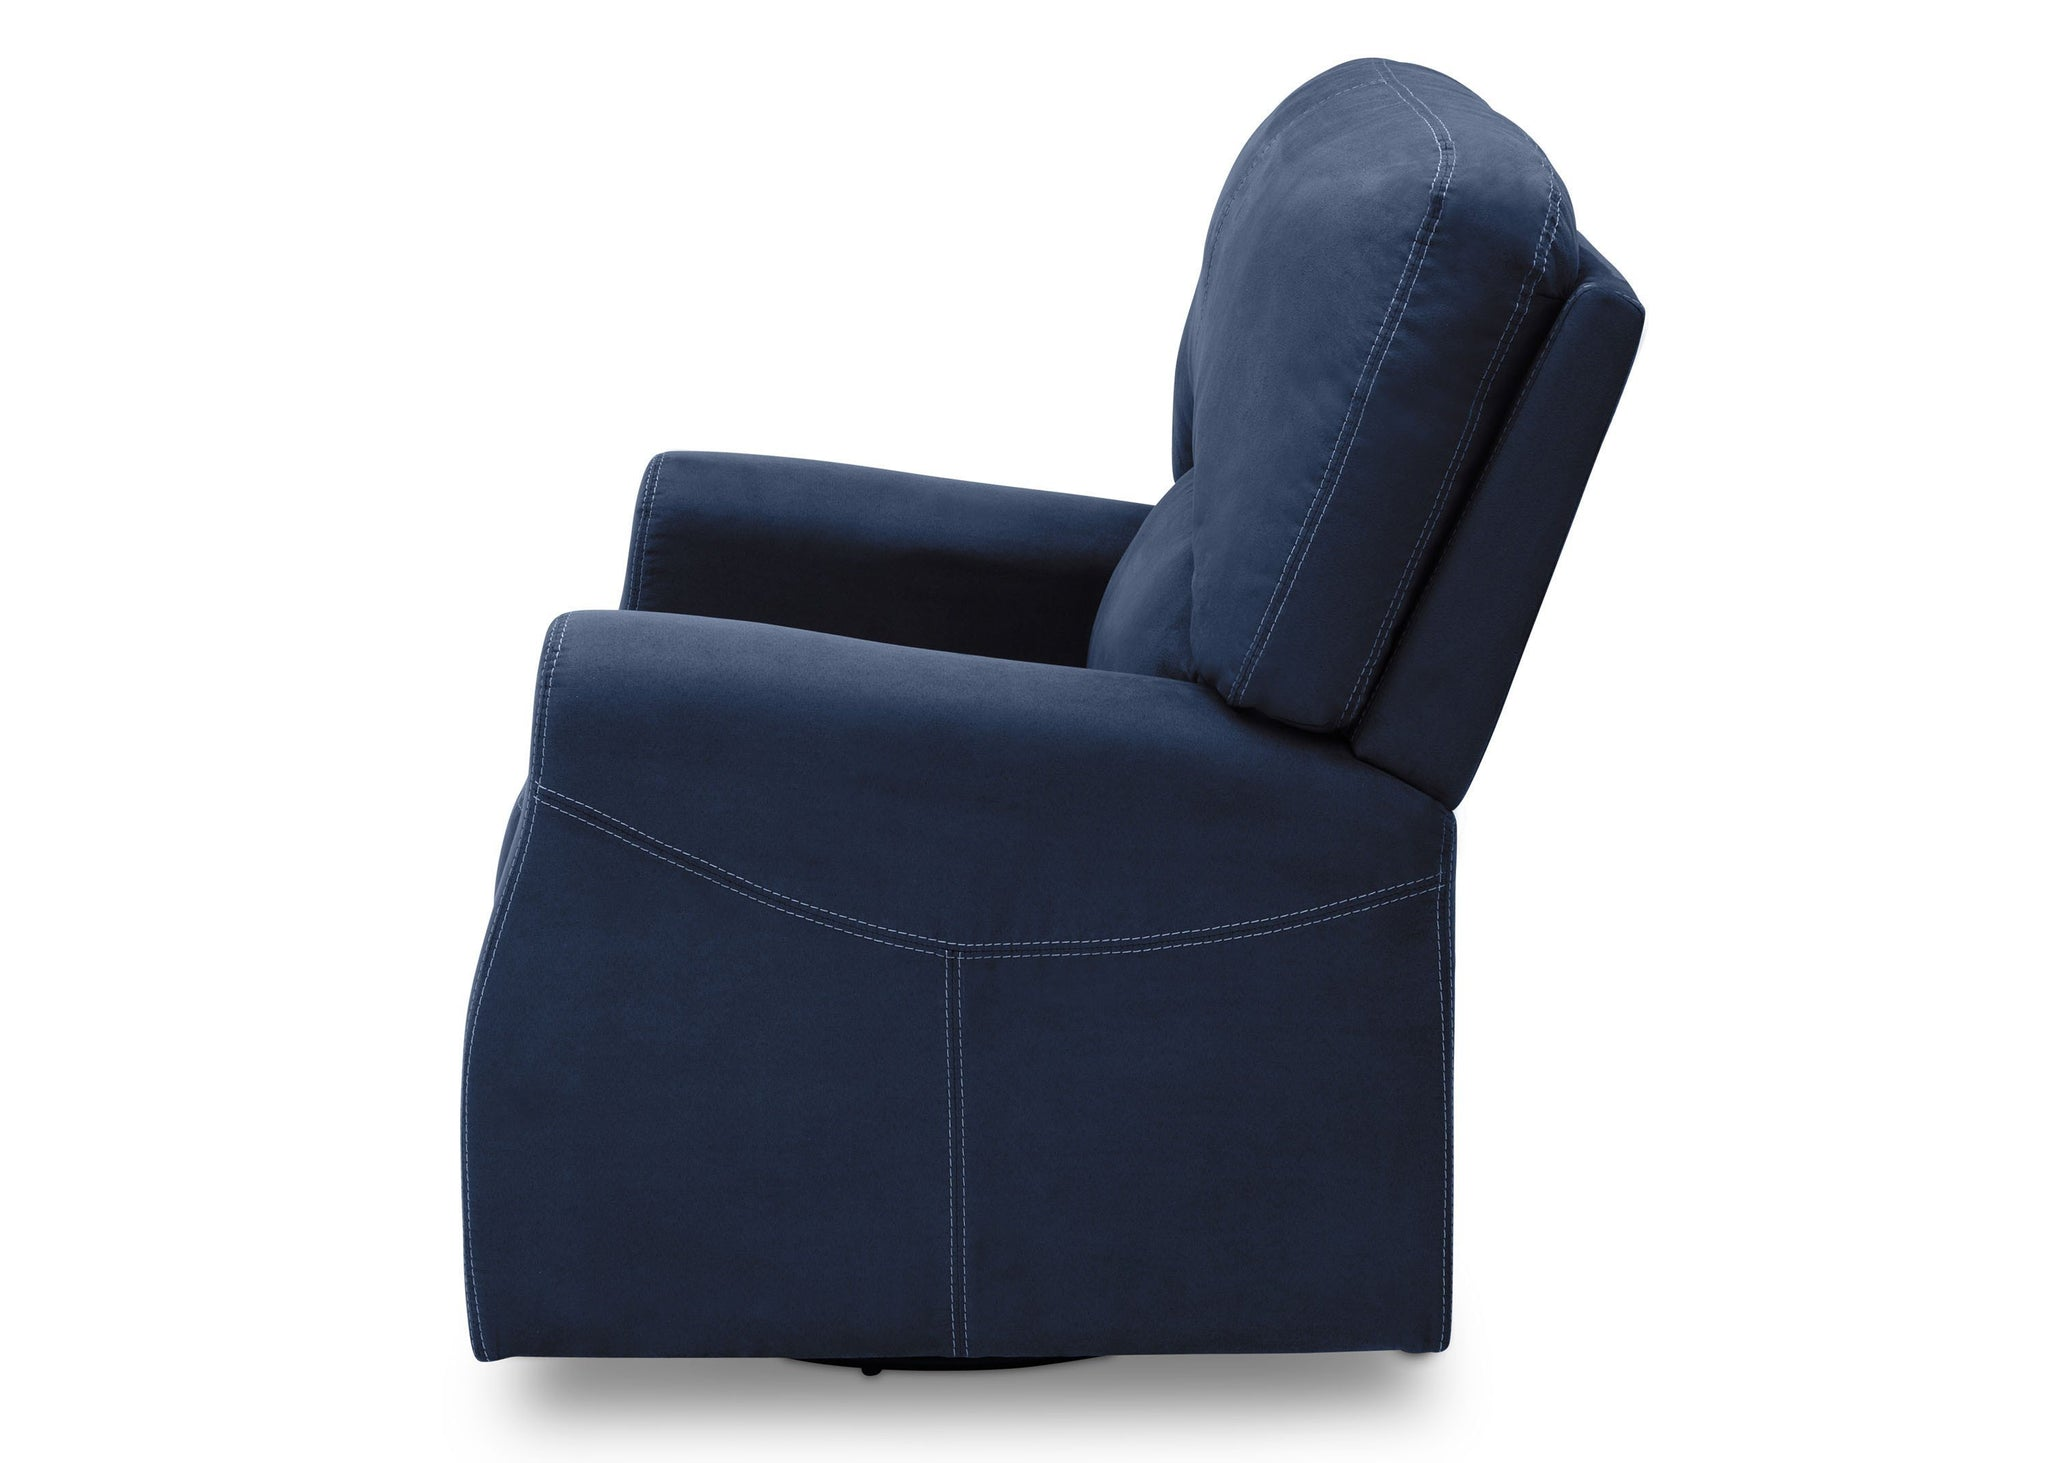 Delta Children Navy (467) Marshall Nursery Glider Swivel Rocker Chair, left side view, c4c